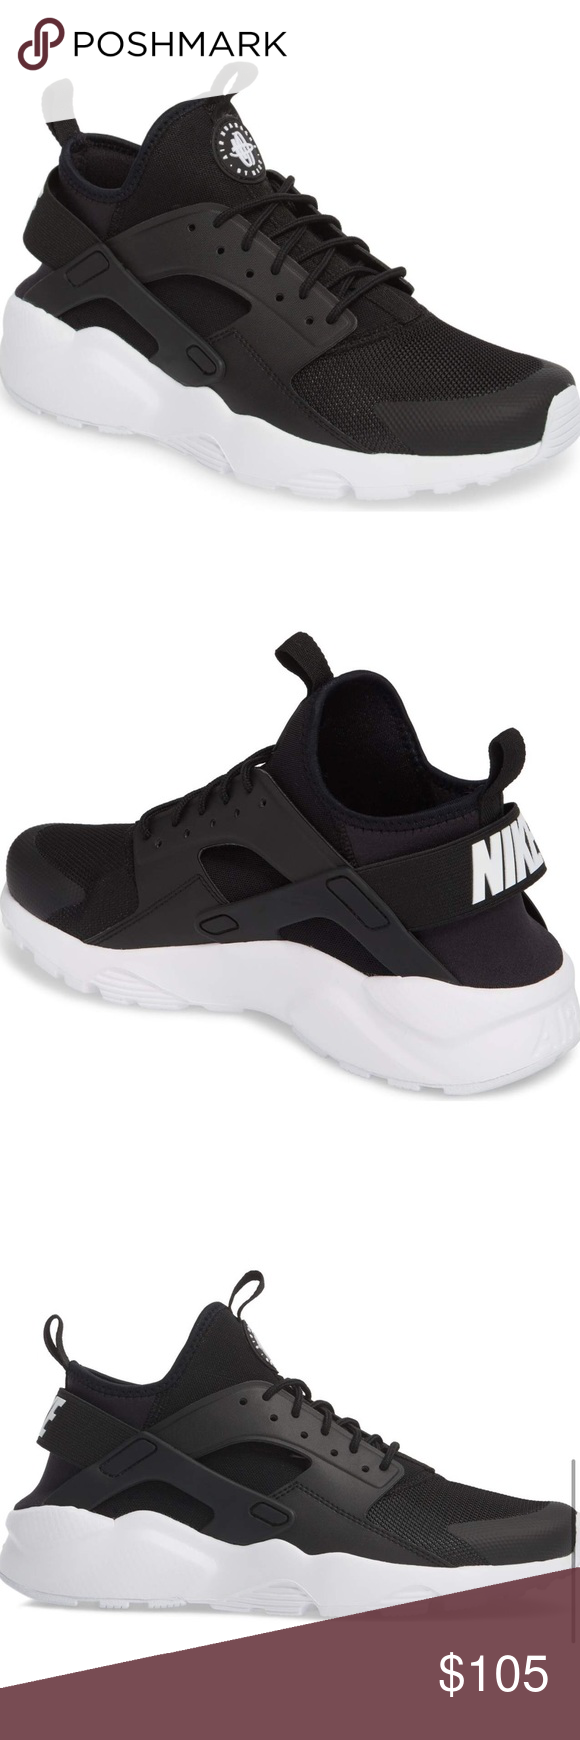 NWOB Nike Air Huarache Run Ultra' Sneaker Taille 9.5 | Summer Fashion